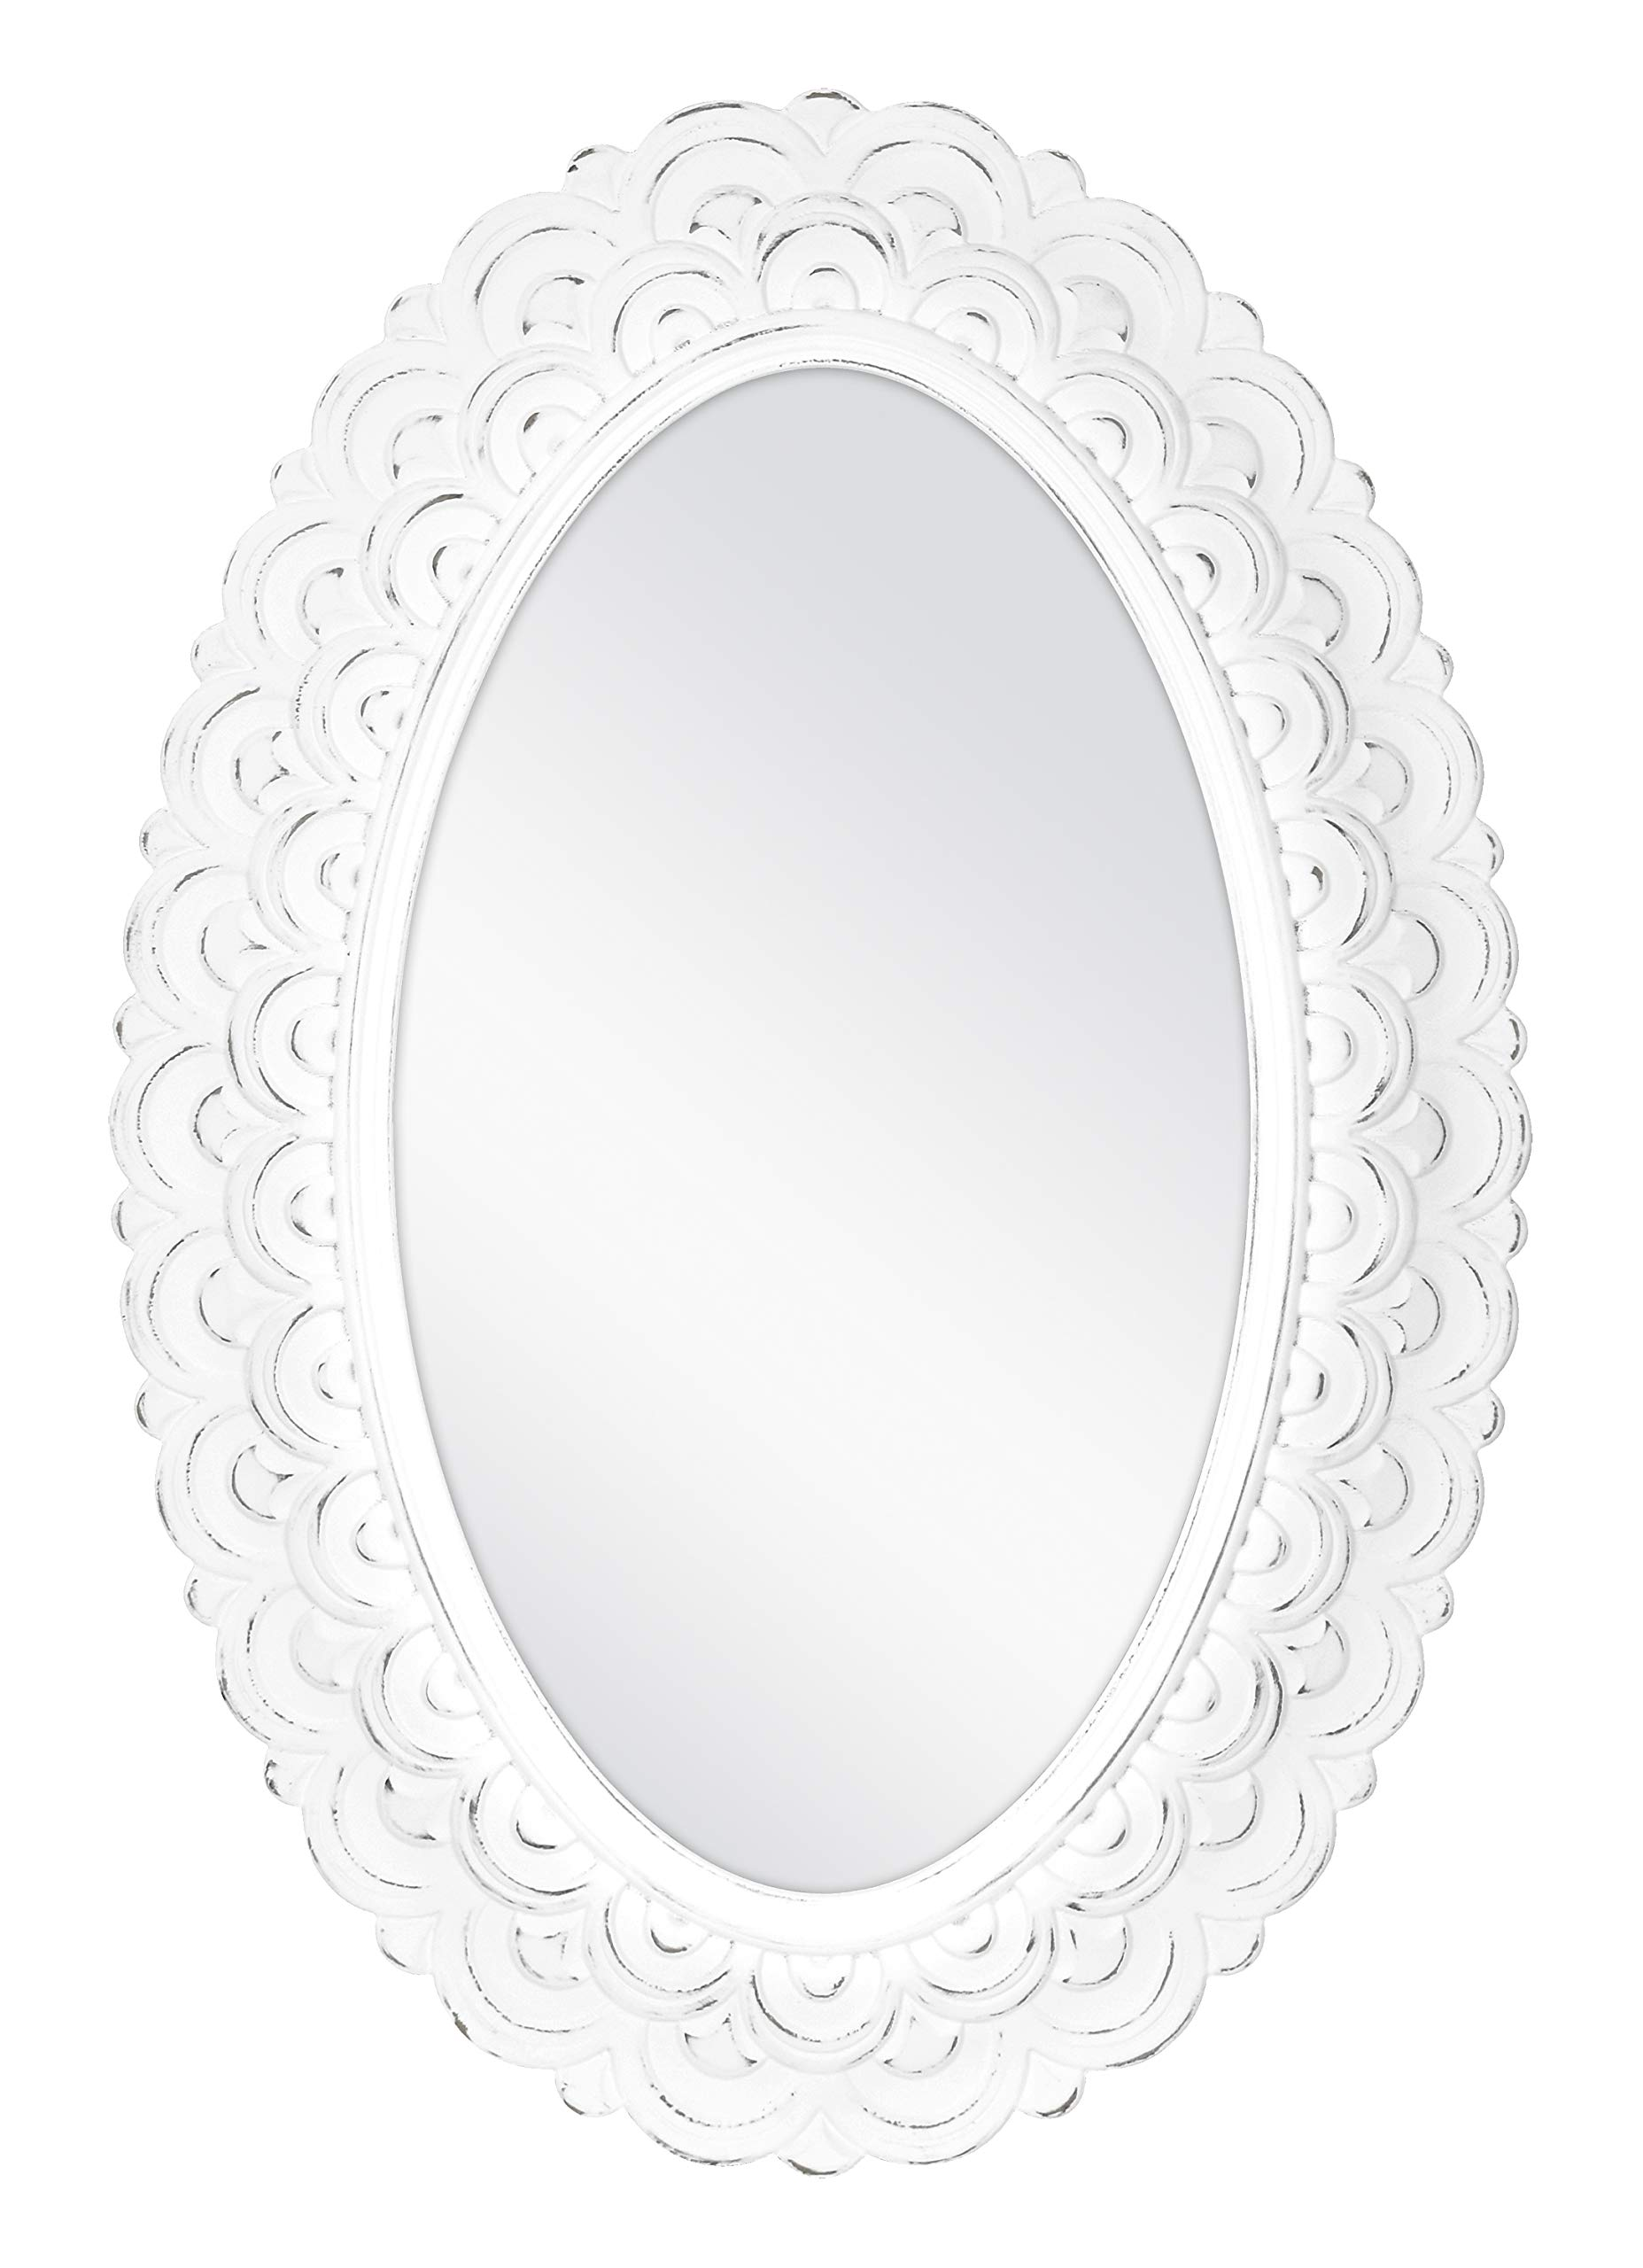 MCS Scalloped Province Oval Wall Mirror, 19x28 Inch Overall Size, Antique White by MCS